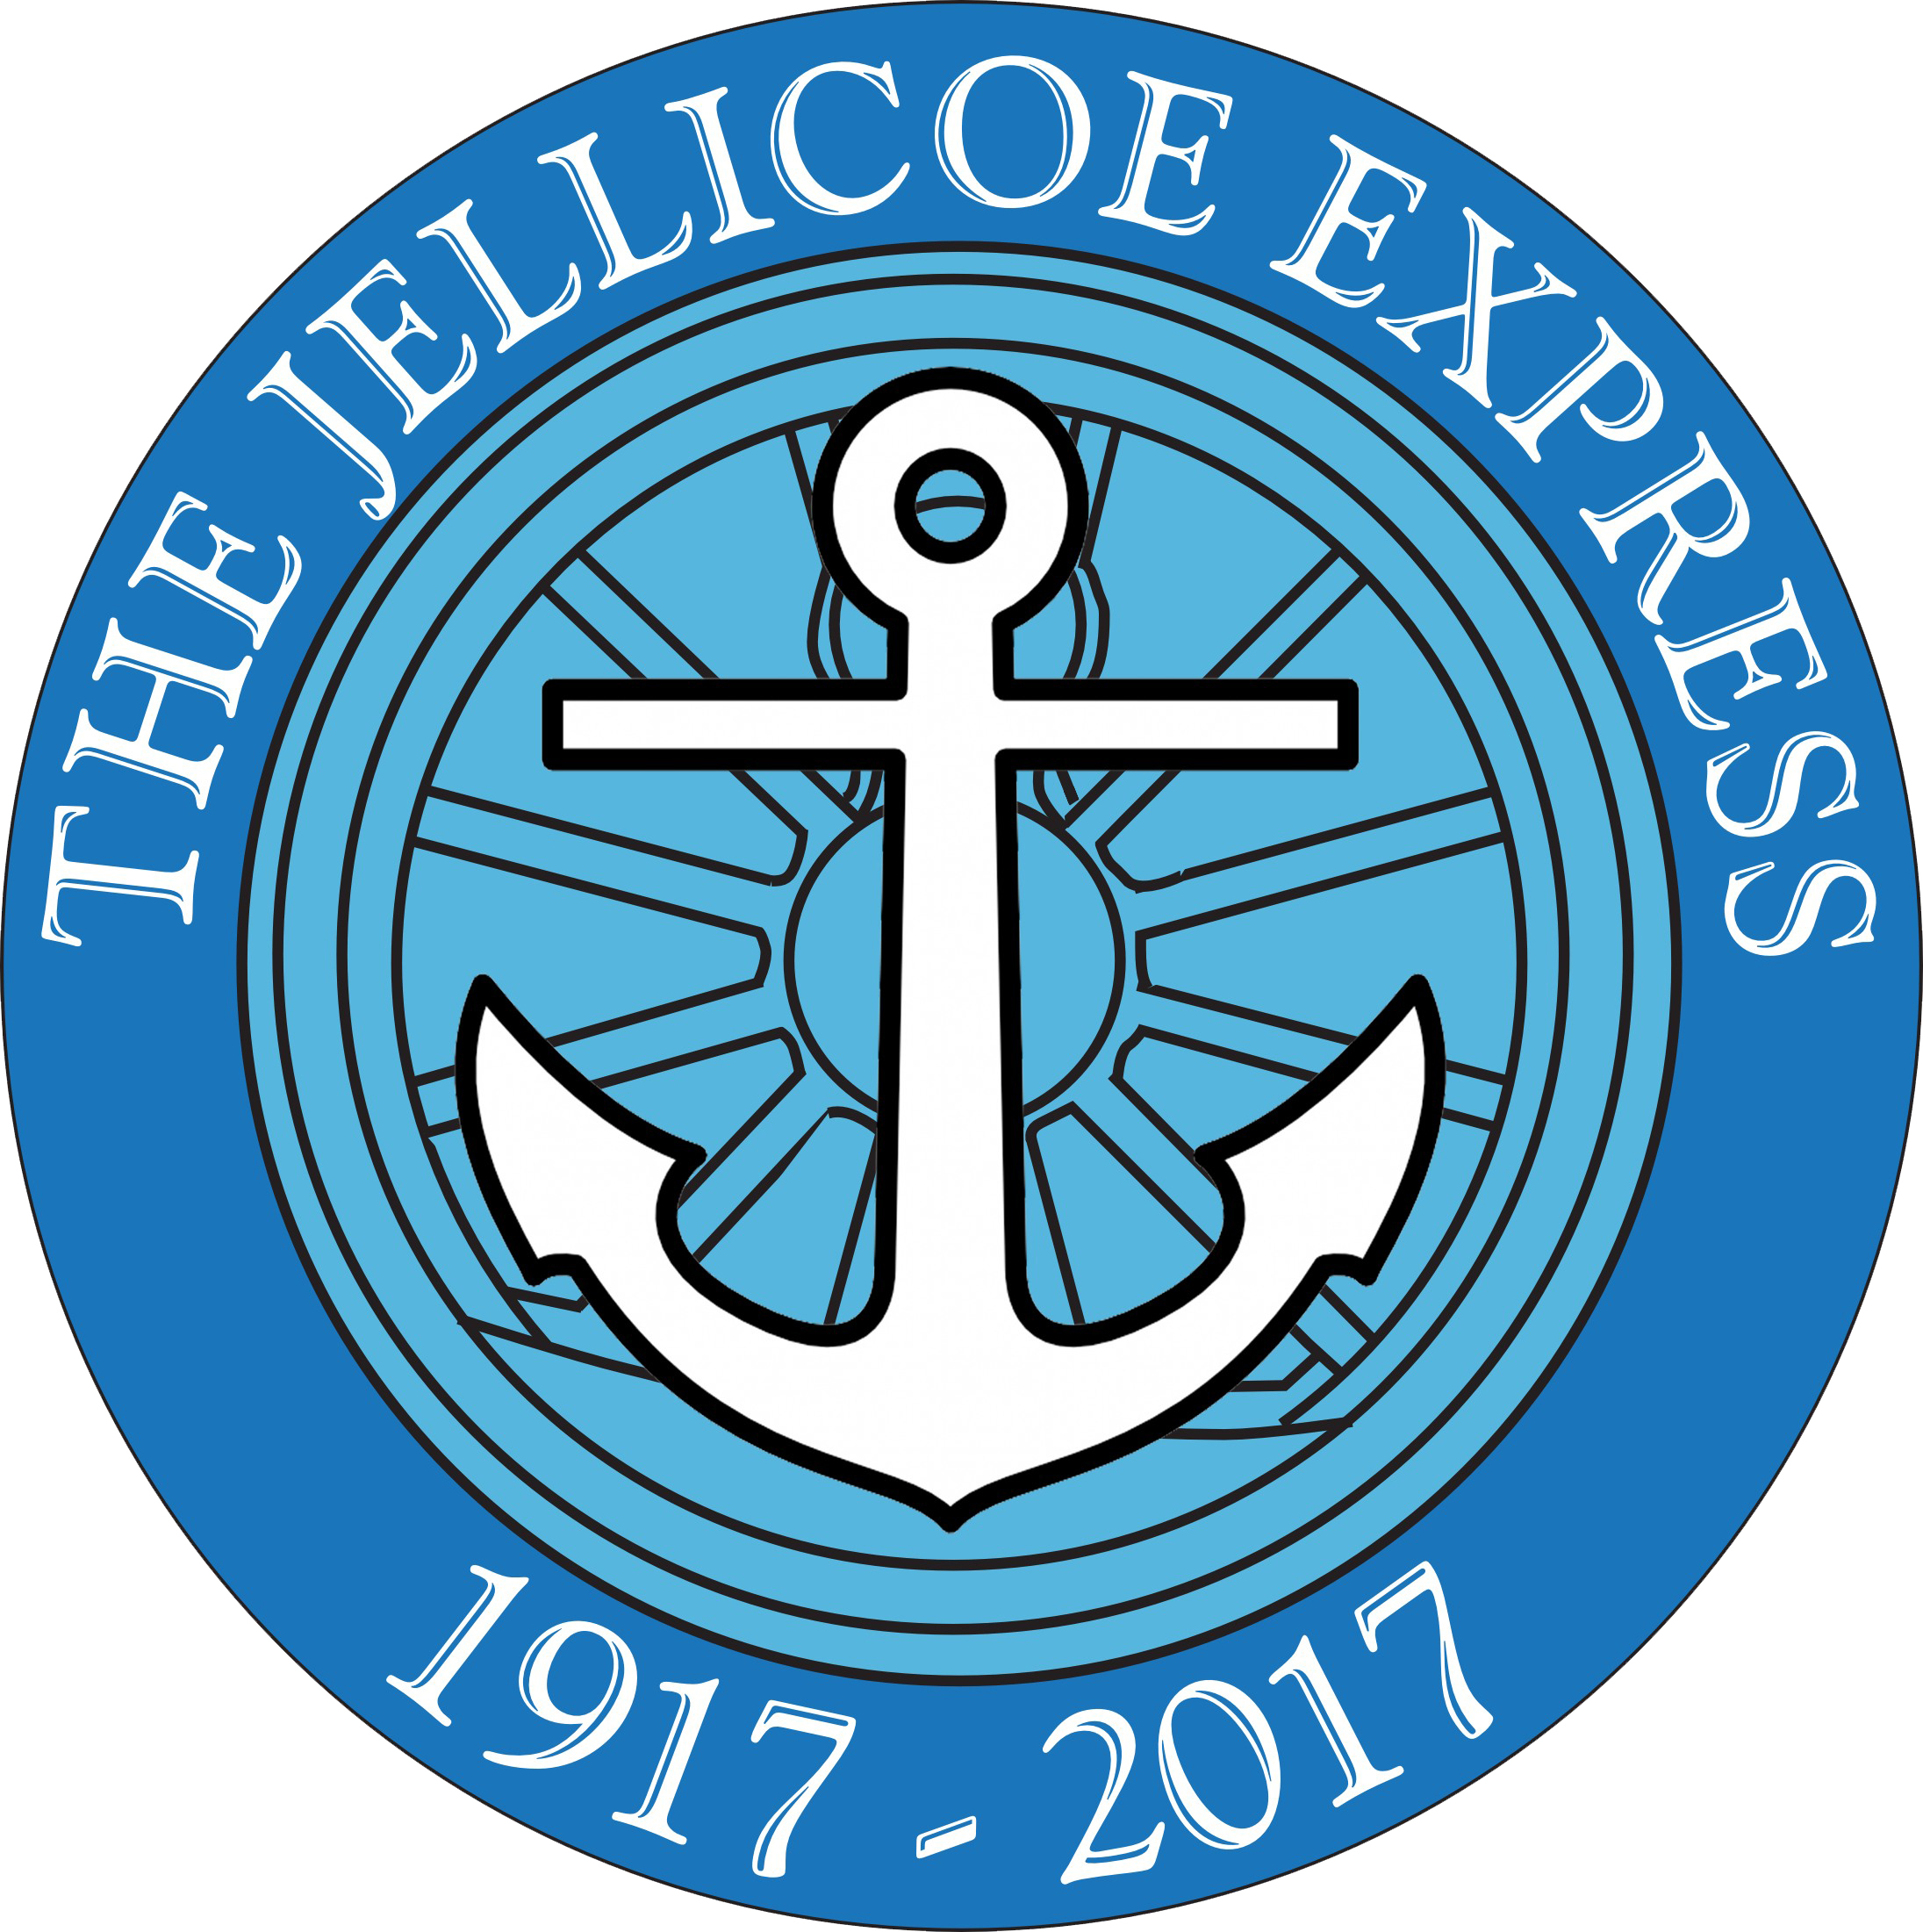 The Jellicoe Express PART Two